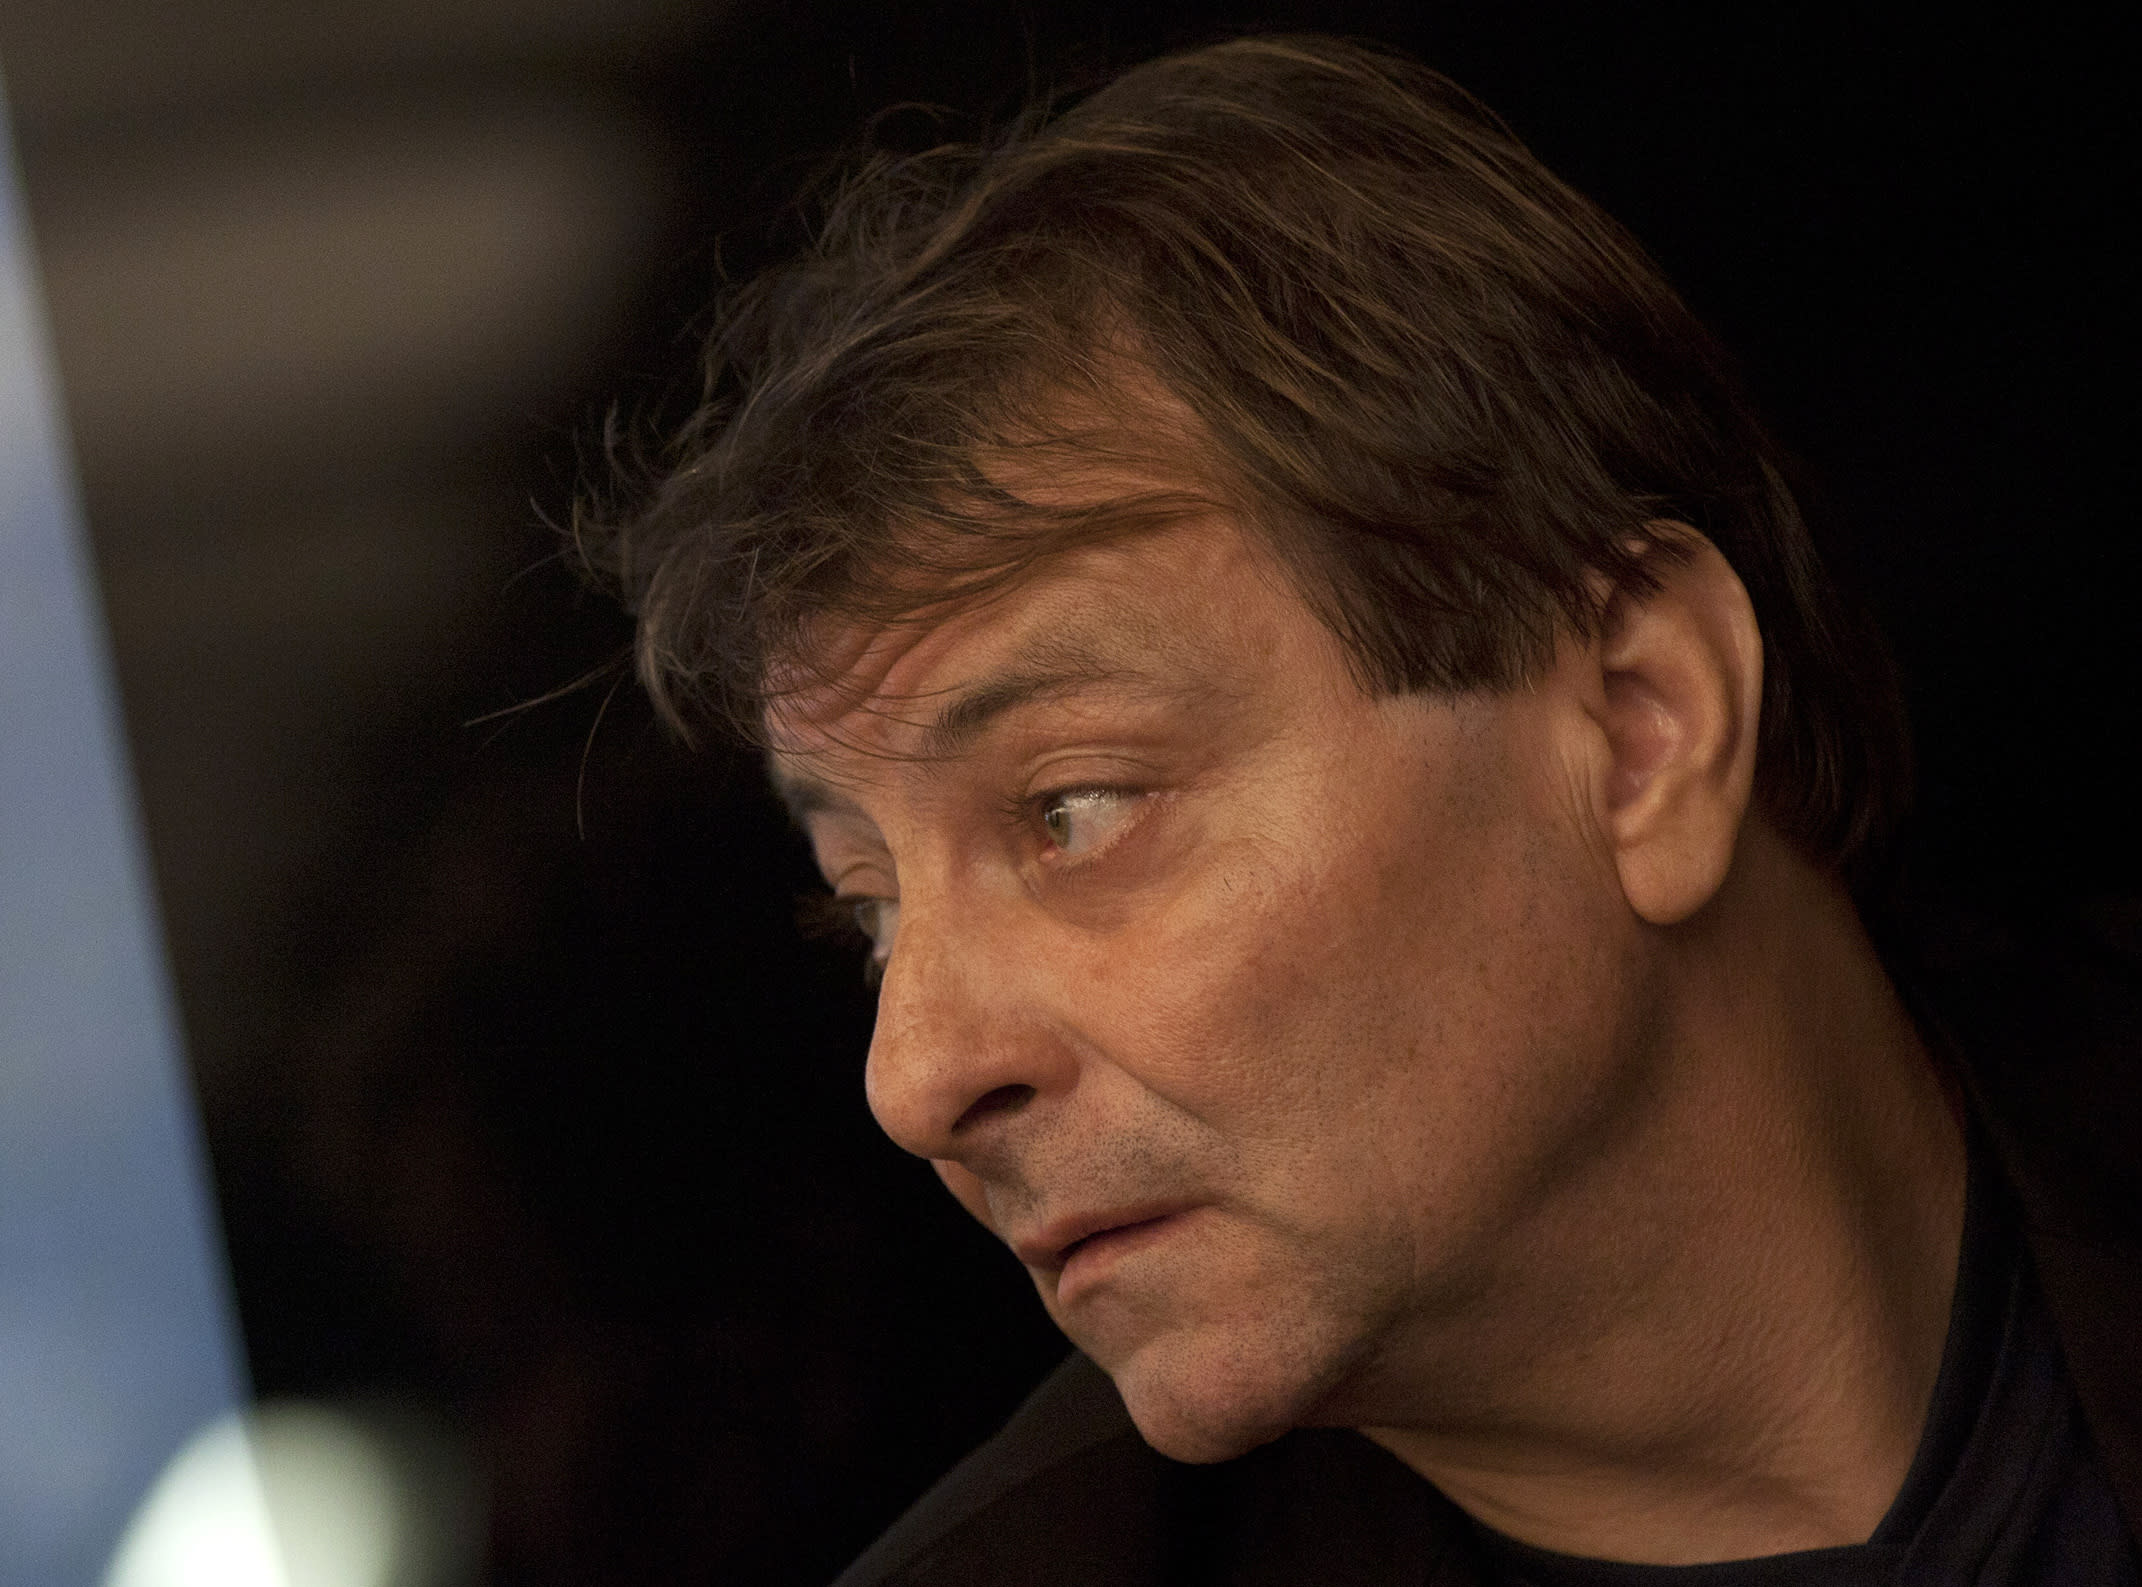 Brazil government to appeal deportation of Cesare Battisti